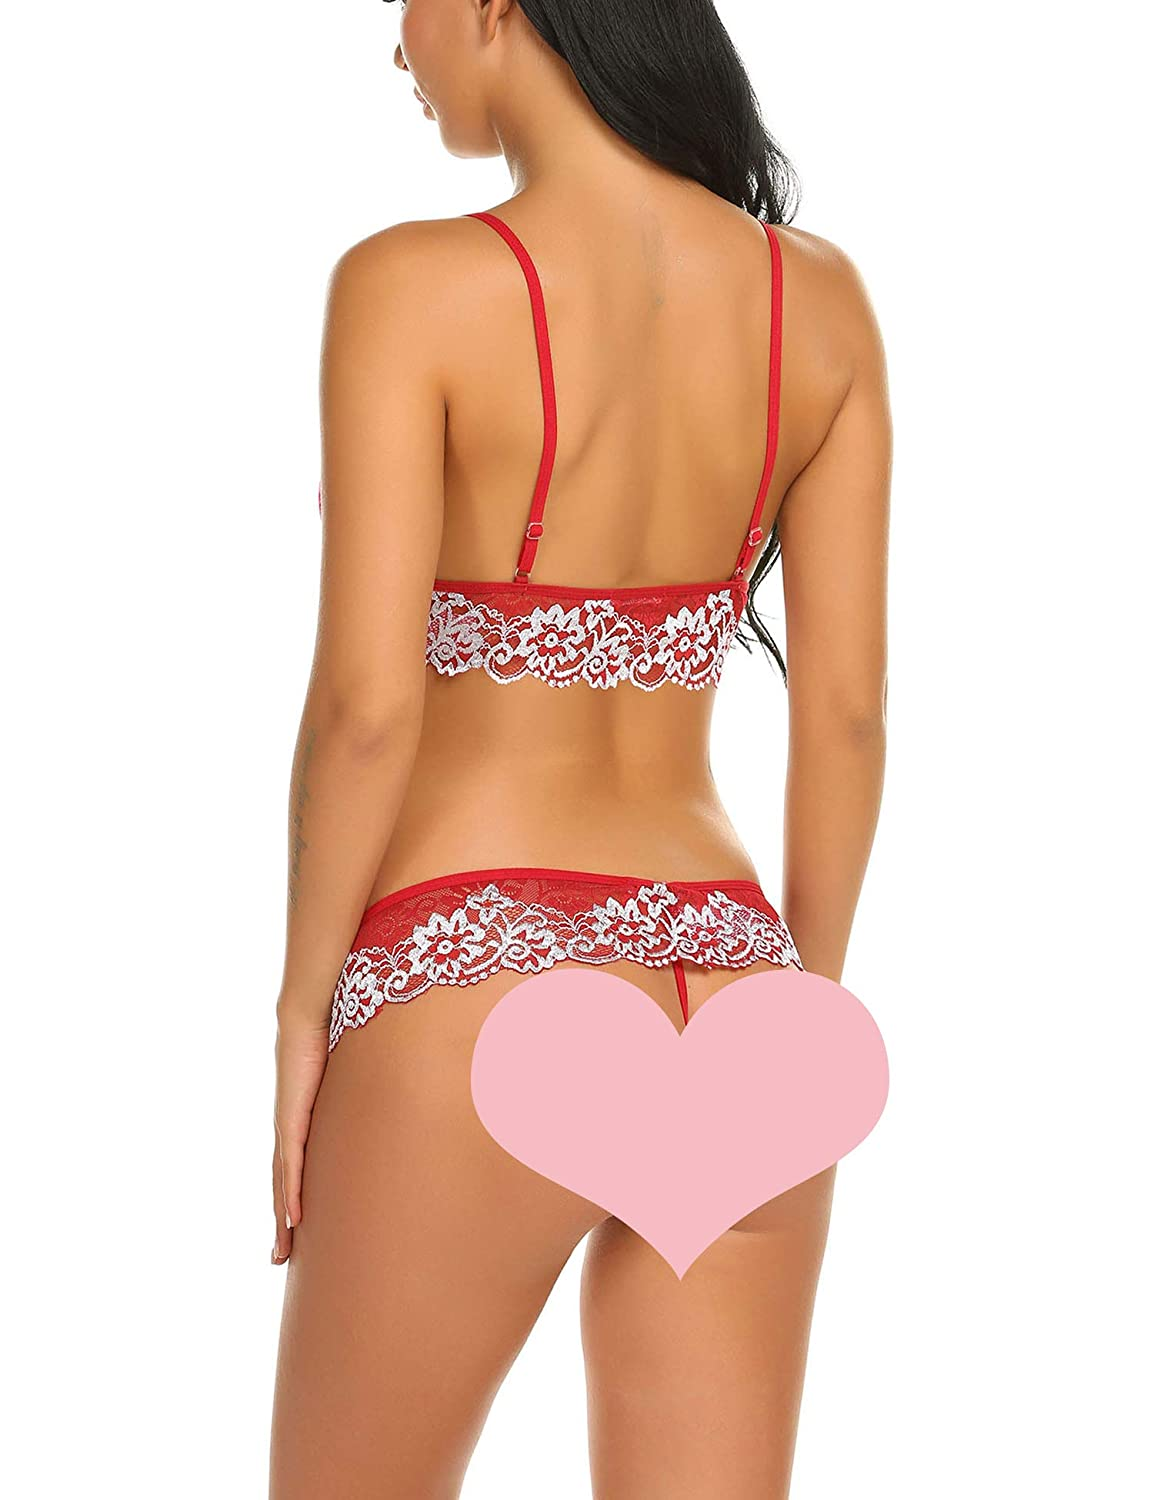 2321e5e321 Hotouch Womens Bra and Panty Set 2 Piece Lace Lingerie Set Bralette Babydoll  with Cute Bowknot